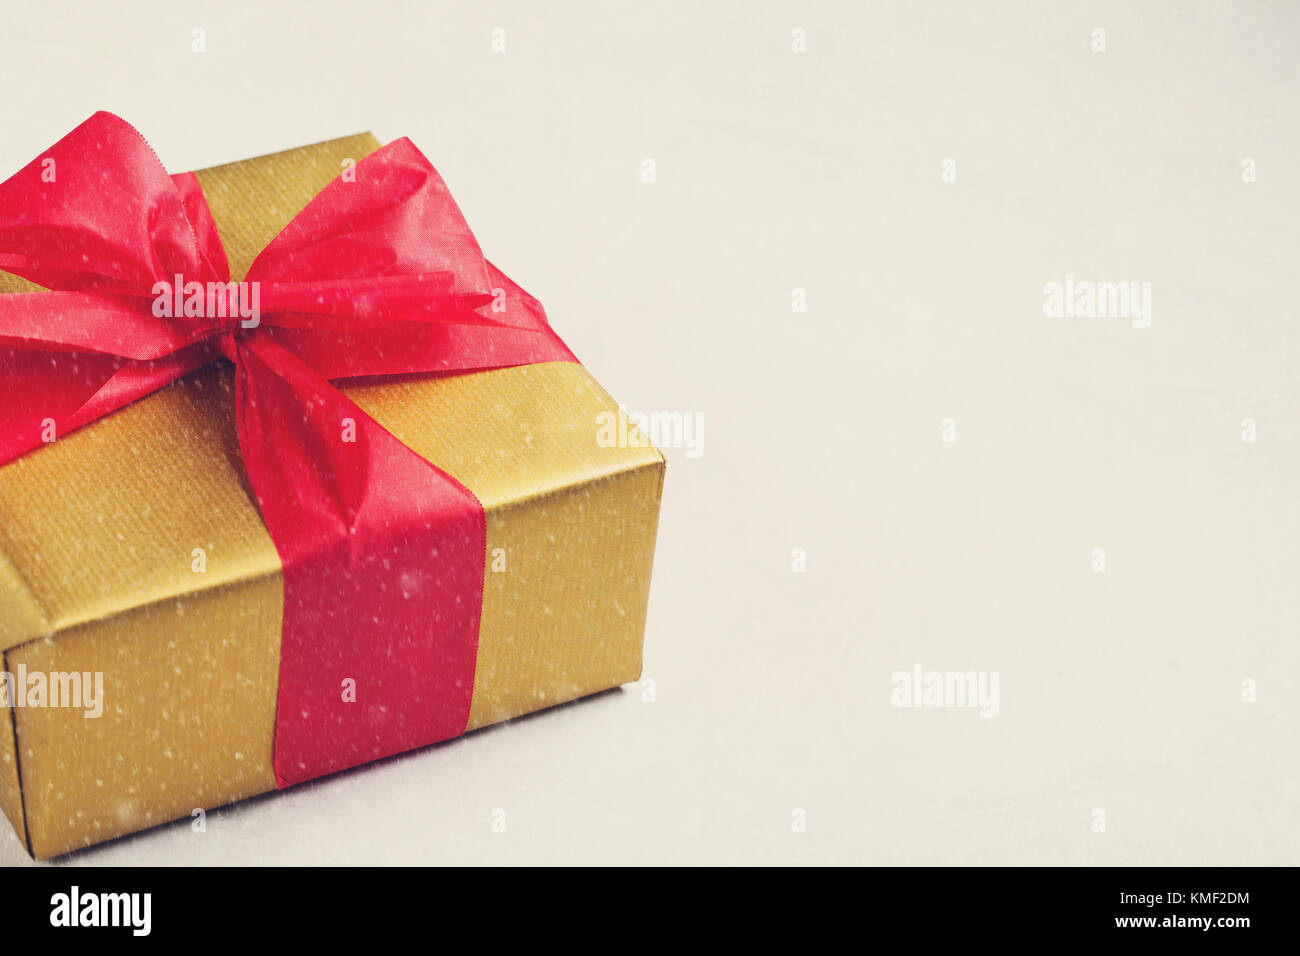 Golden gift box tied with a red ribbon isolated on white background. Copy space. vintage tones. - Stock Image